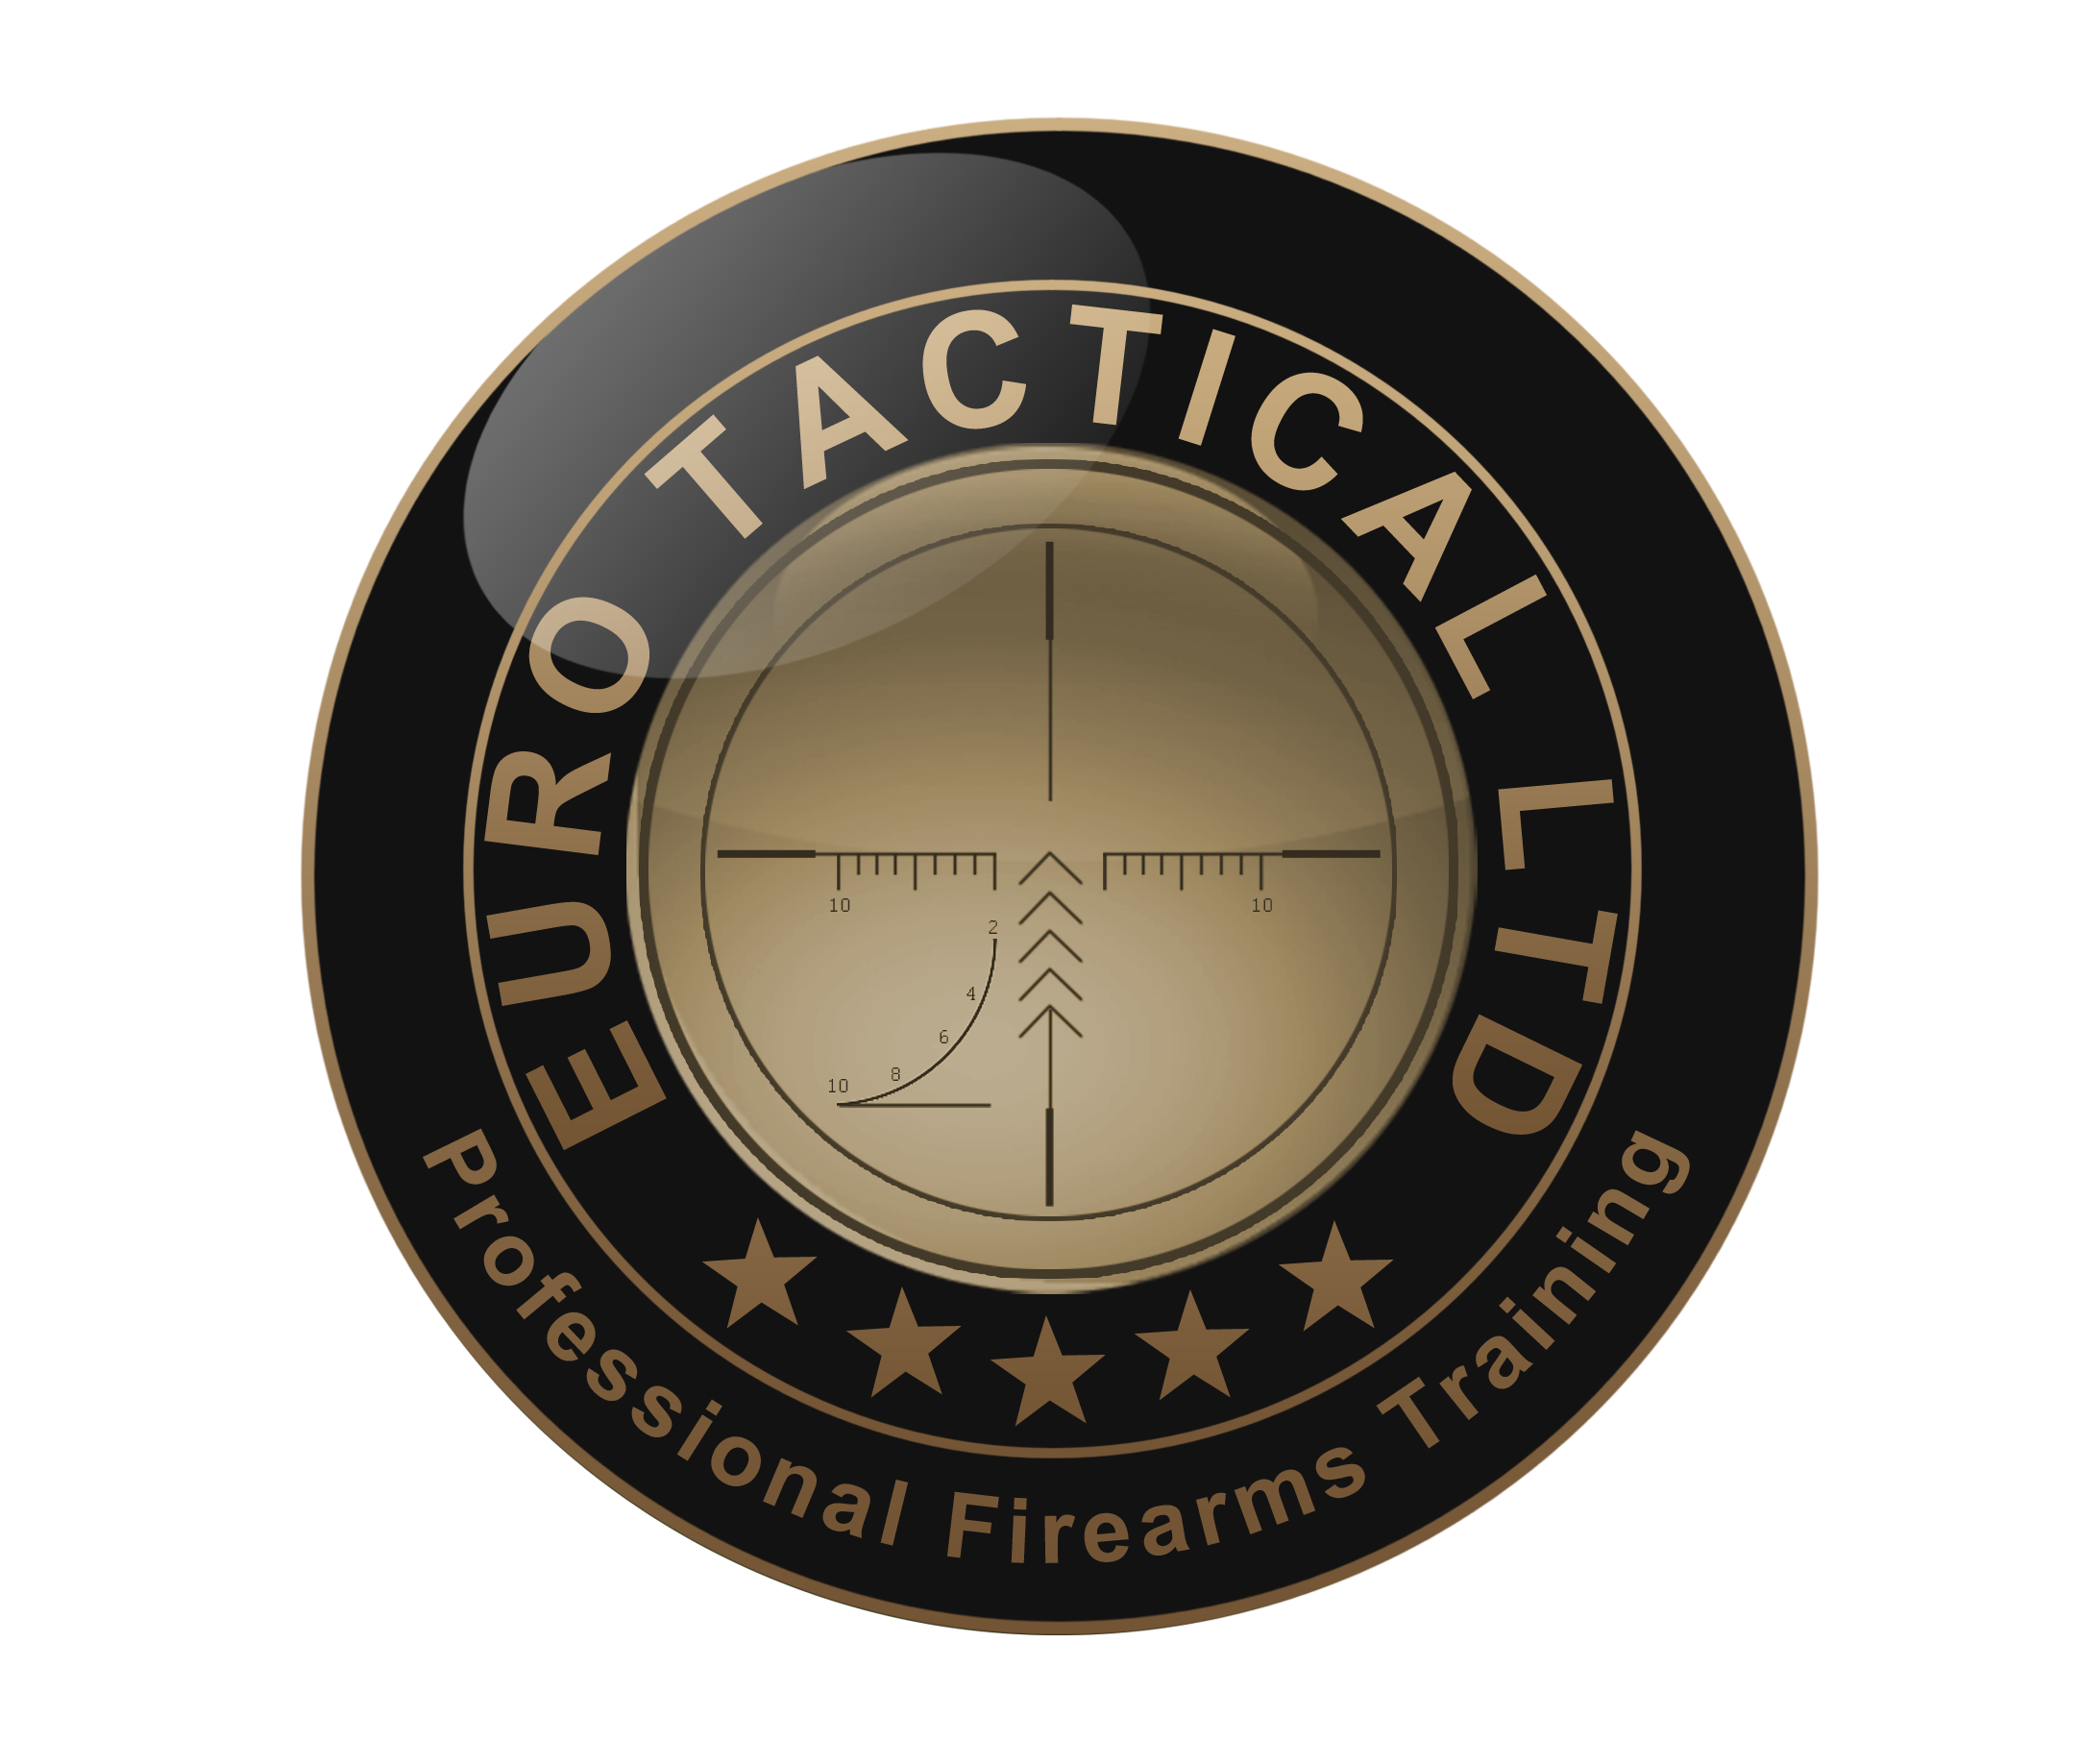 Specialist Firearms Training